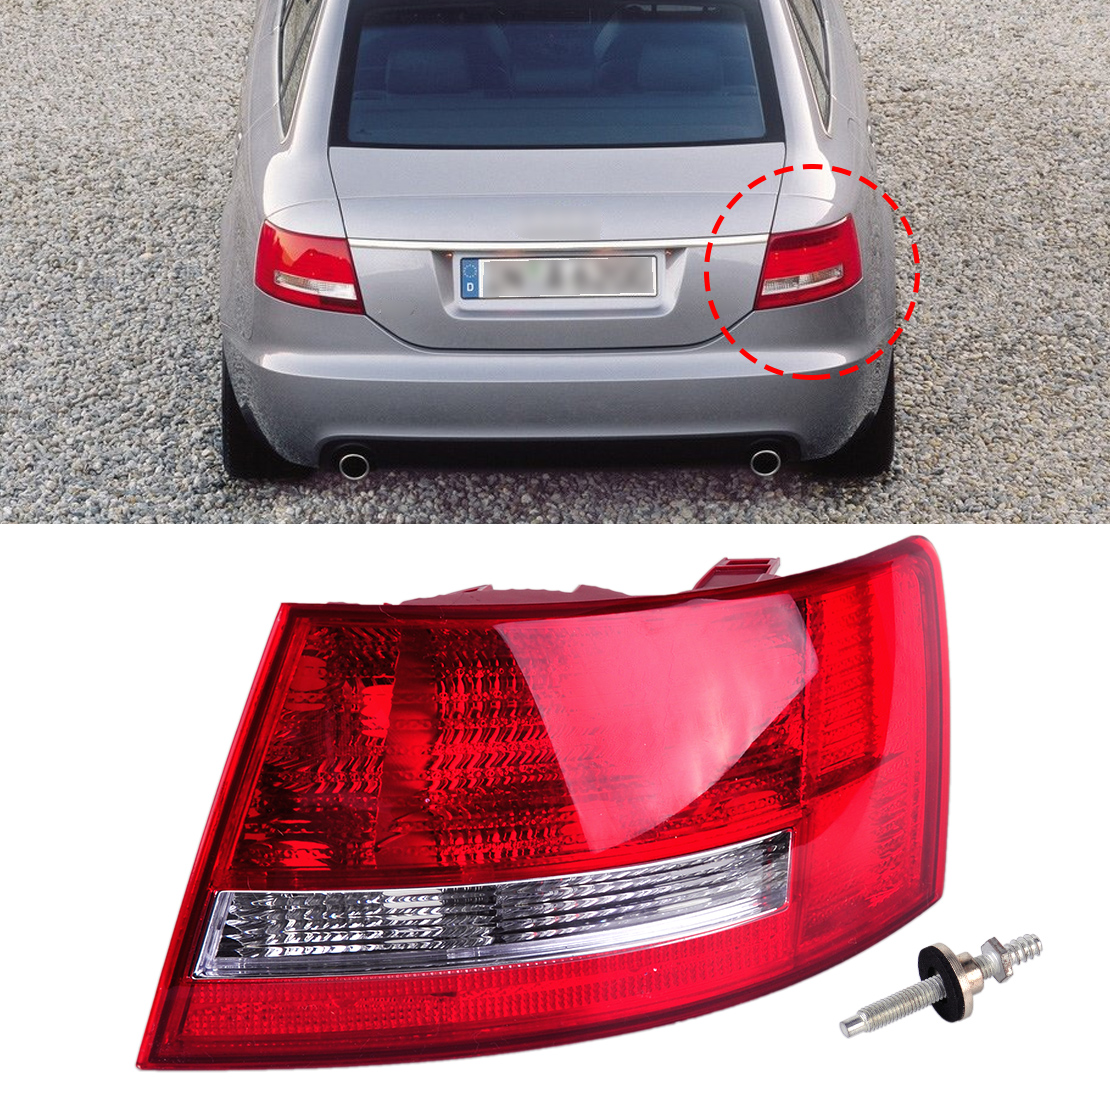 beler Rear Right Light Assembly Lamp Housing without Bulb 4F5 945 096 L 4F5 945 096 D for Audi A6 /A6 Quattro Sedan 2005 2006-08 thermostat housing assembly yu3z8a586aa 902204 yu3z8a586 97jm9k478ae for d explore r 4 0l v6 for d range r